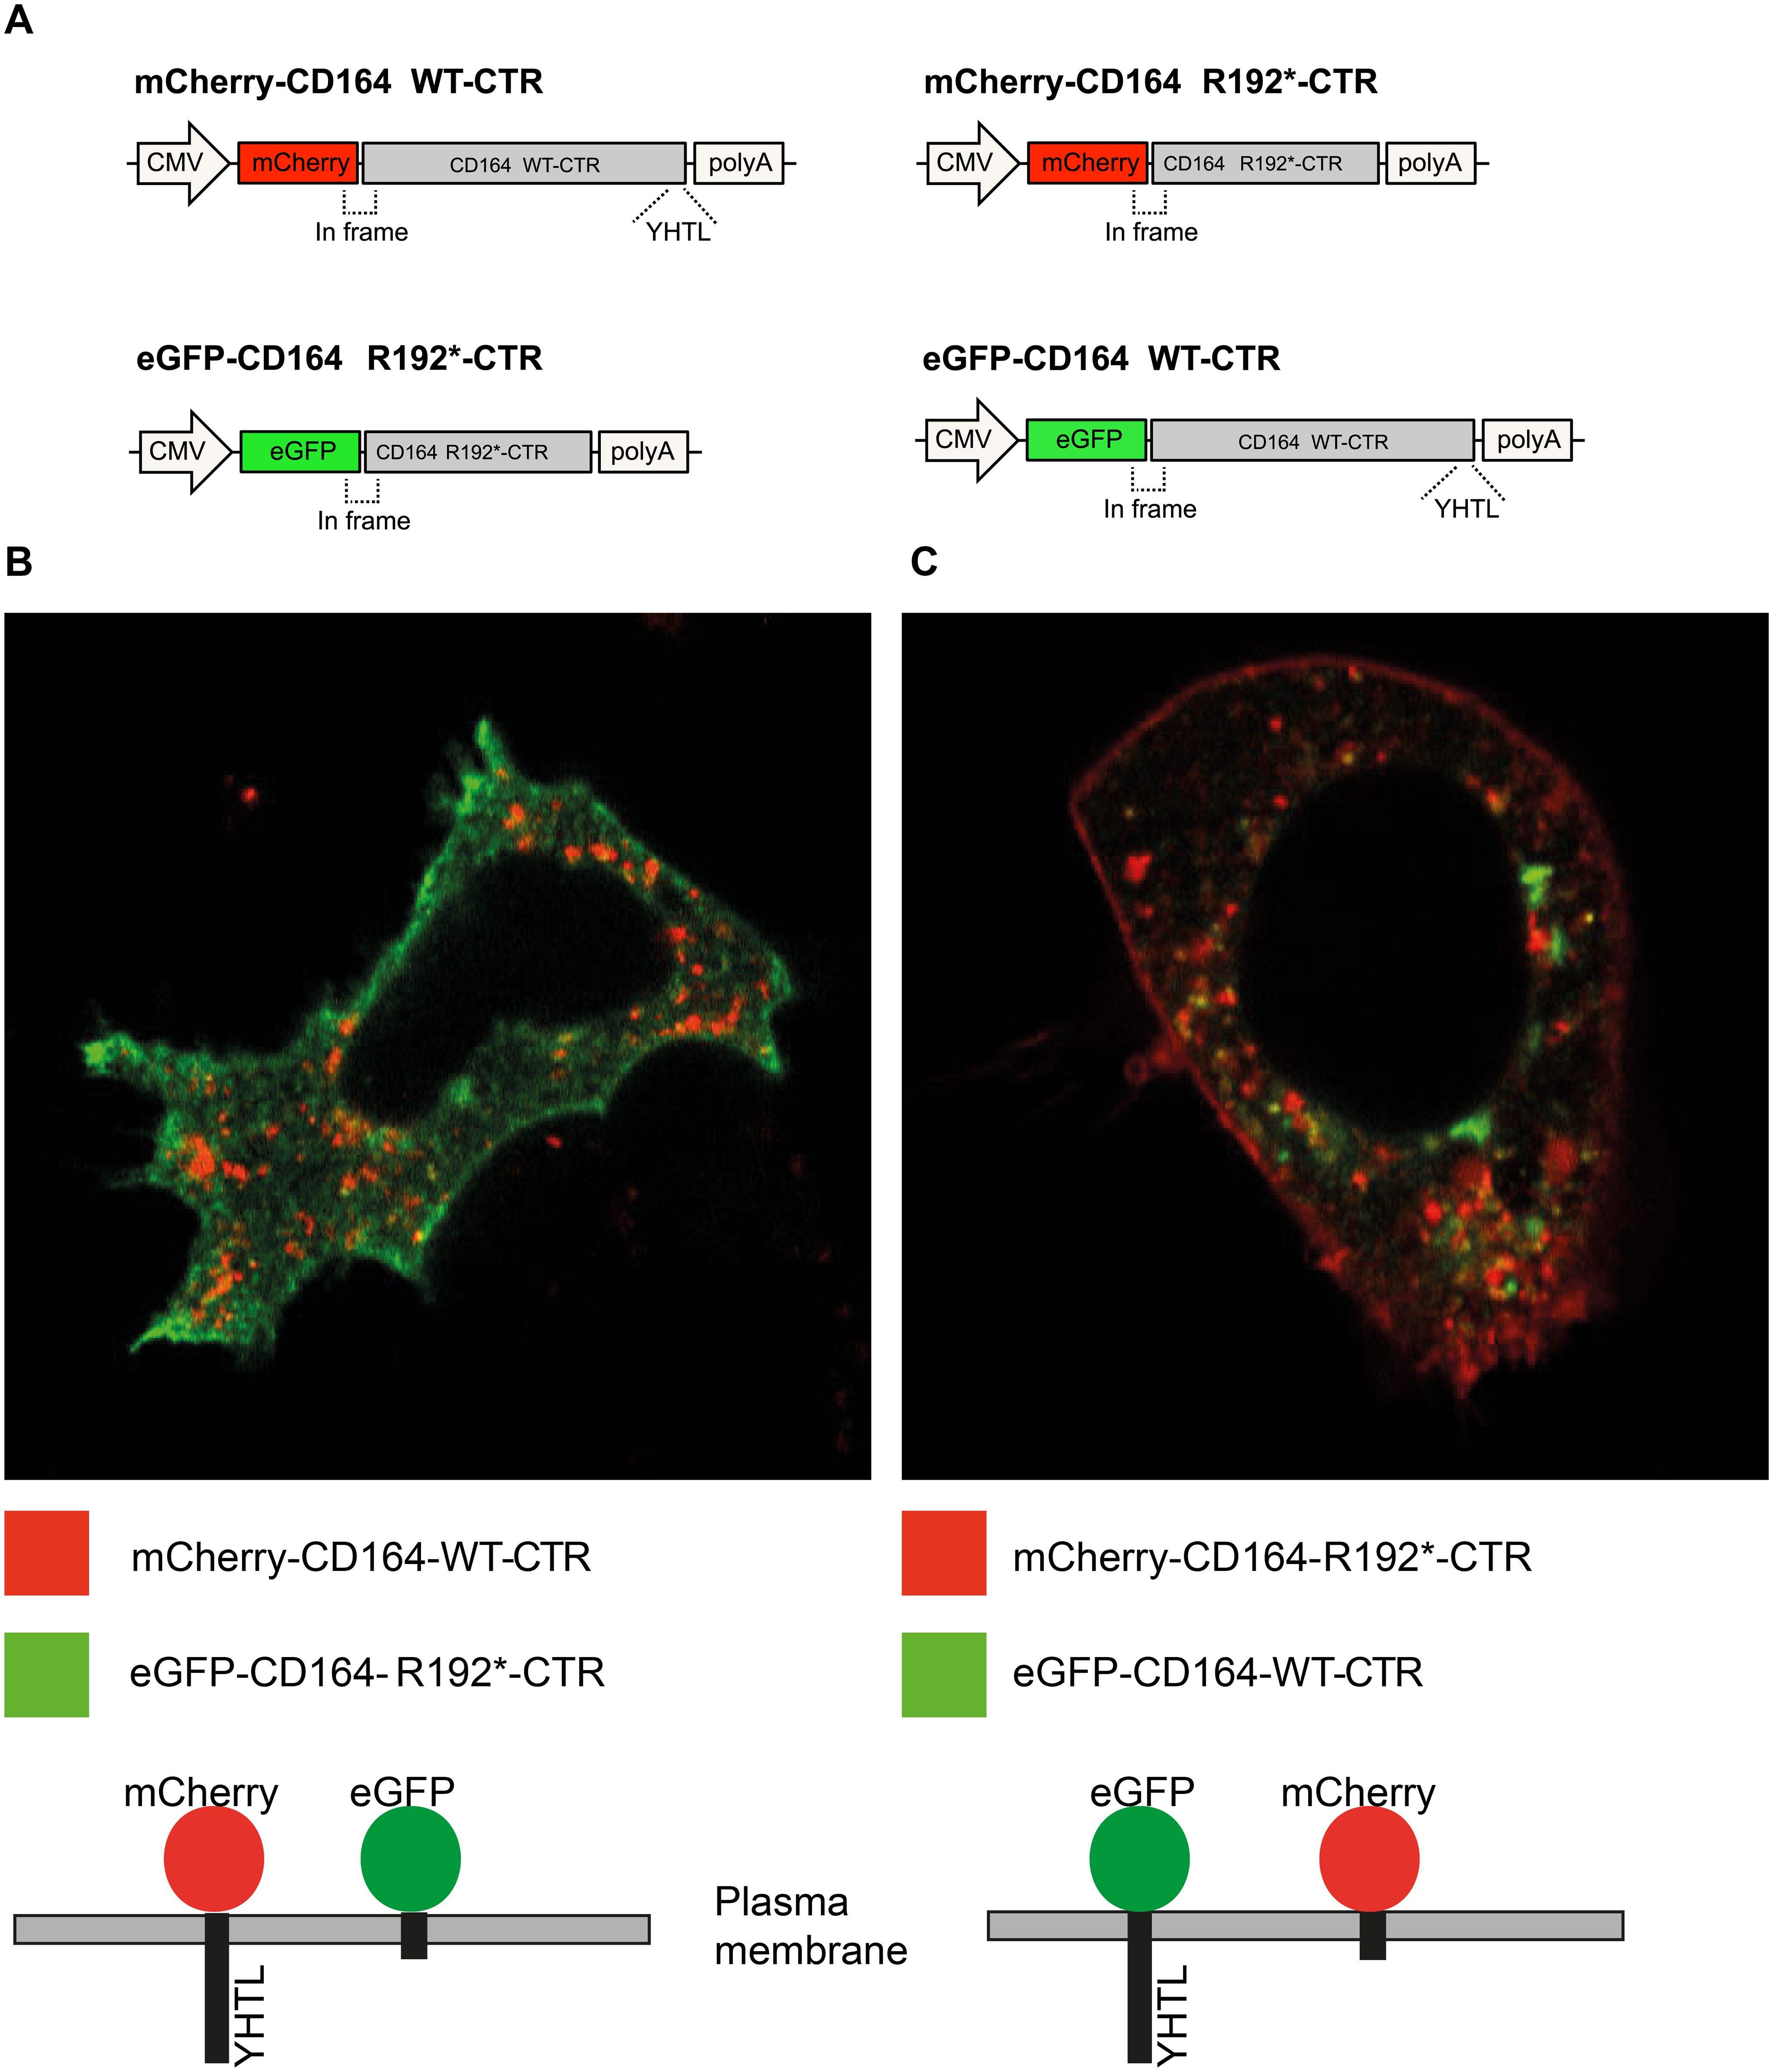 Membrane localization of fluorescent proteins fused to the CD164 C-terminal domain containing the R192* mutation.